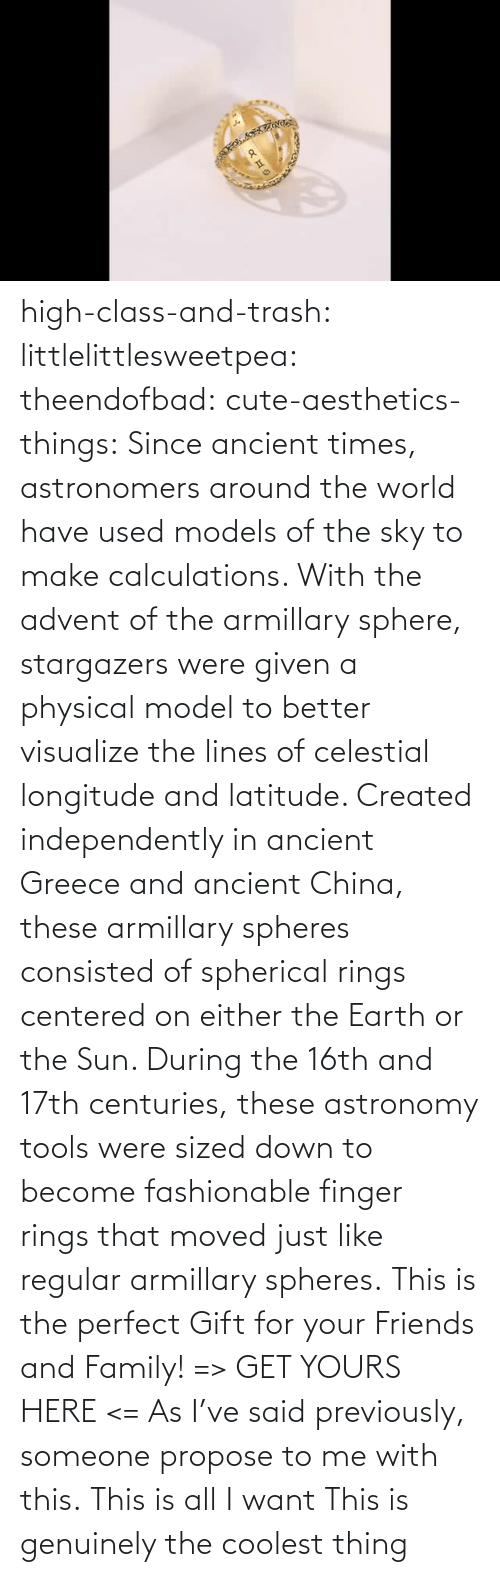 China: high-class-and-trash:  littlelittlesweetpea: theendofbad:   cute-aesthetics-things:  Since ancient times, astronomers around the world have used models of the sky to make calculations. With the advent of the armillary sphere, stargazers were given a physical model to better visualize the lines of celestial longitude and latitude. Created independently in ancient Greece and ancient China, these armillary spheres consisted of spherical rings centered on either the Earth or the Sun. During the 16th and 17th centuries, these astronomy tools were sized down to become fashionable finger rings that moved just like regular armillary spheres. This is the perfect Gift for your Friends and Family! => GET YOURS HERE <=   As I've said previously, someone propose to me with this.   This is all I want   This is genuinely the coolest thing